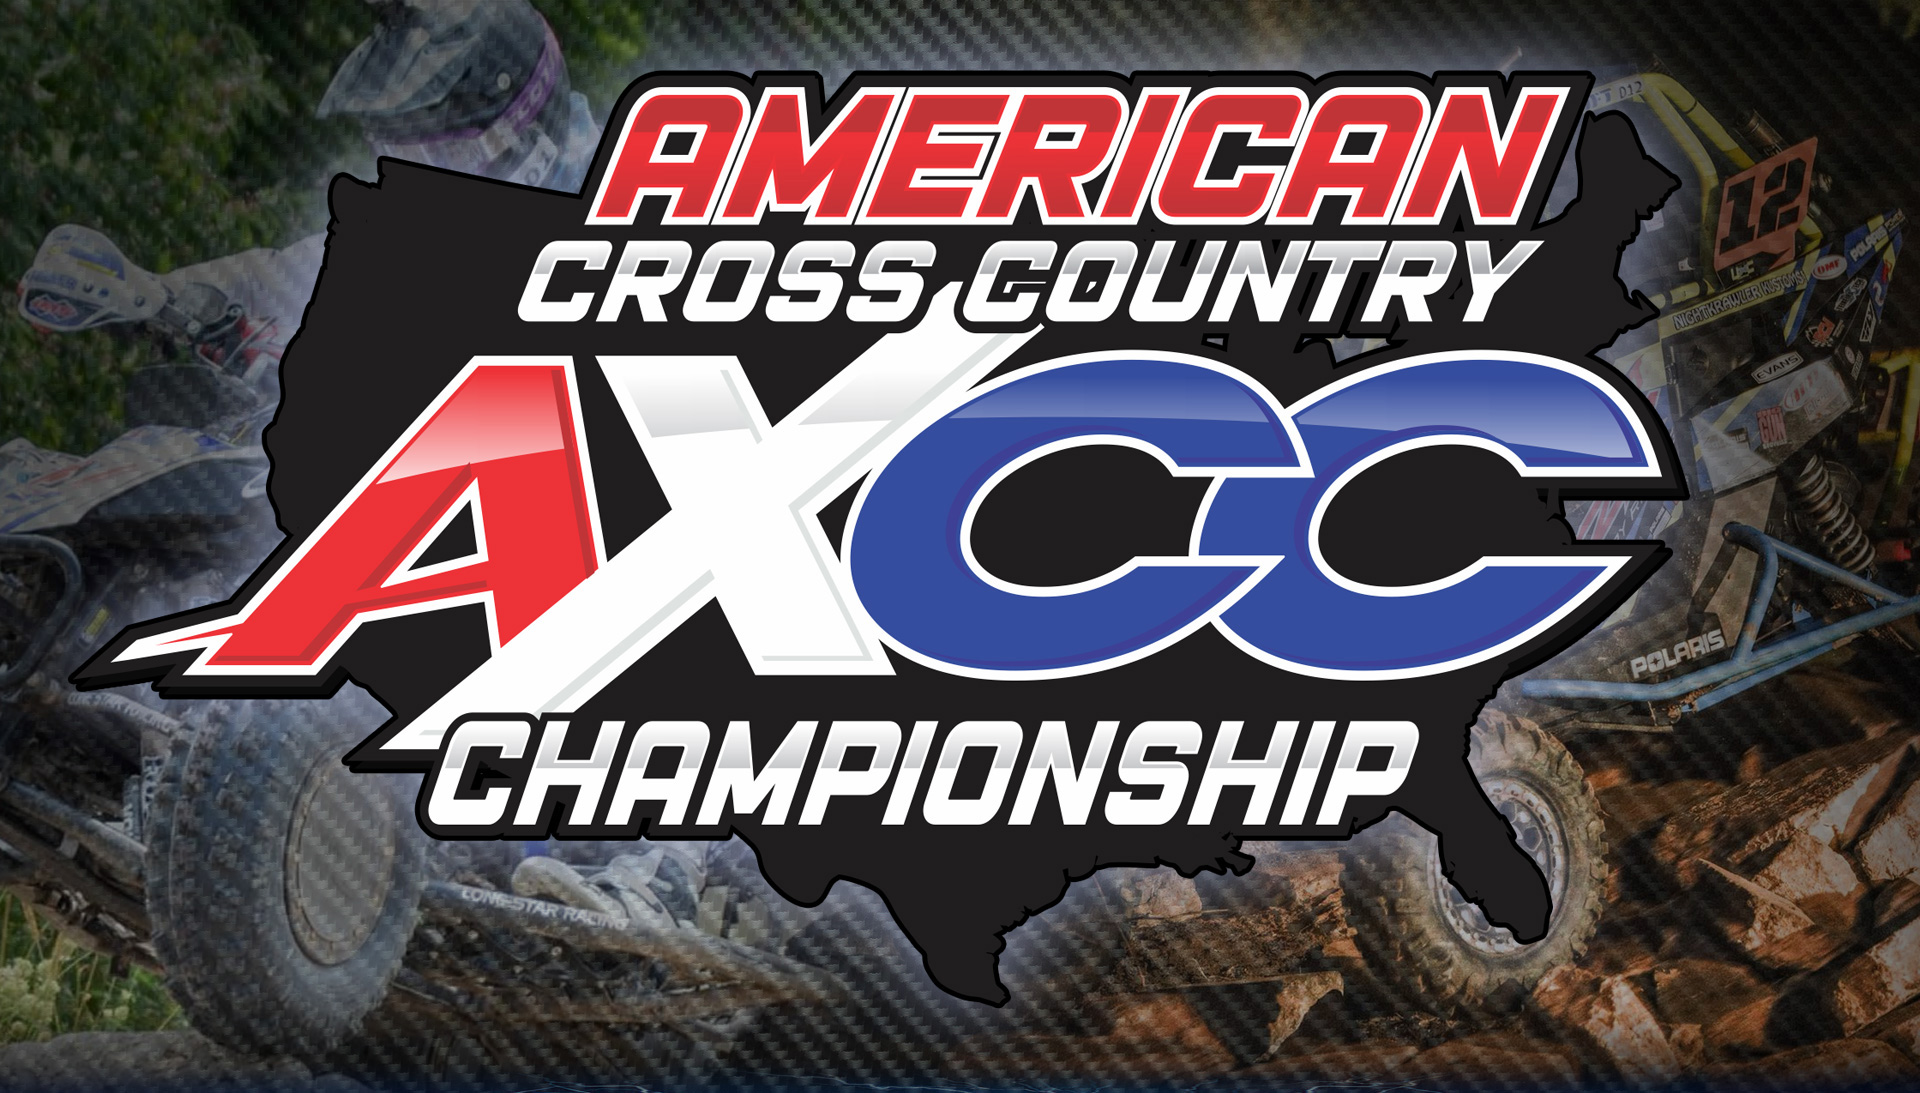 AXCC Number Place Colors - American Cross Country